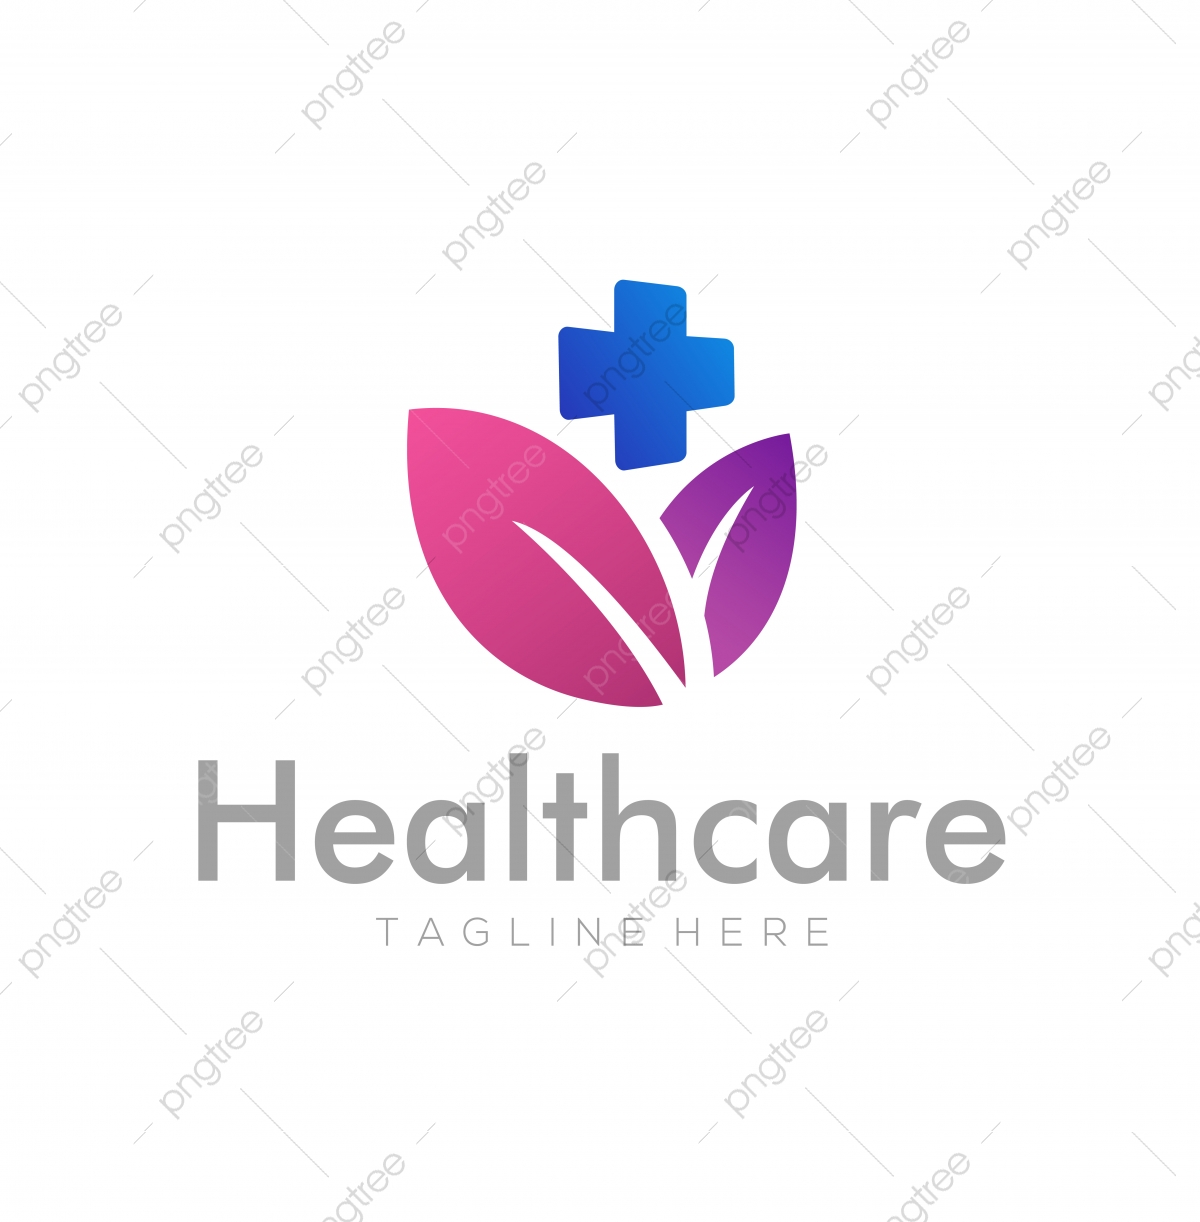 Home Healthcare Png Images Vector And Psd Files Free Download On Pngtree